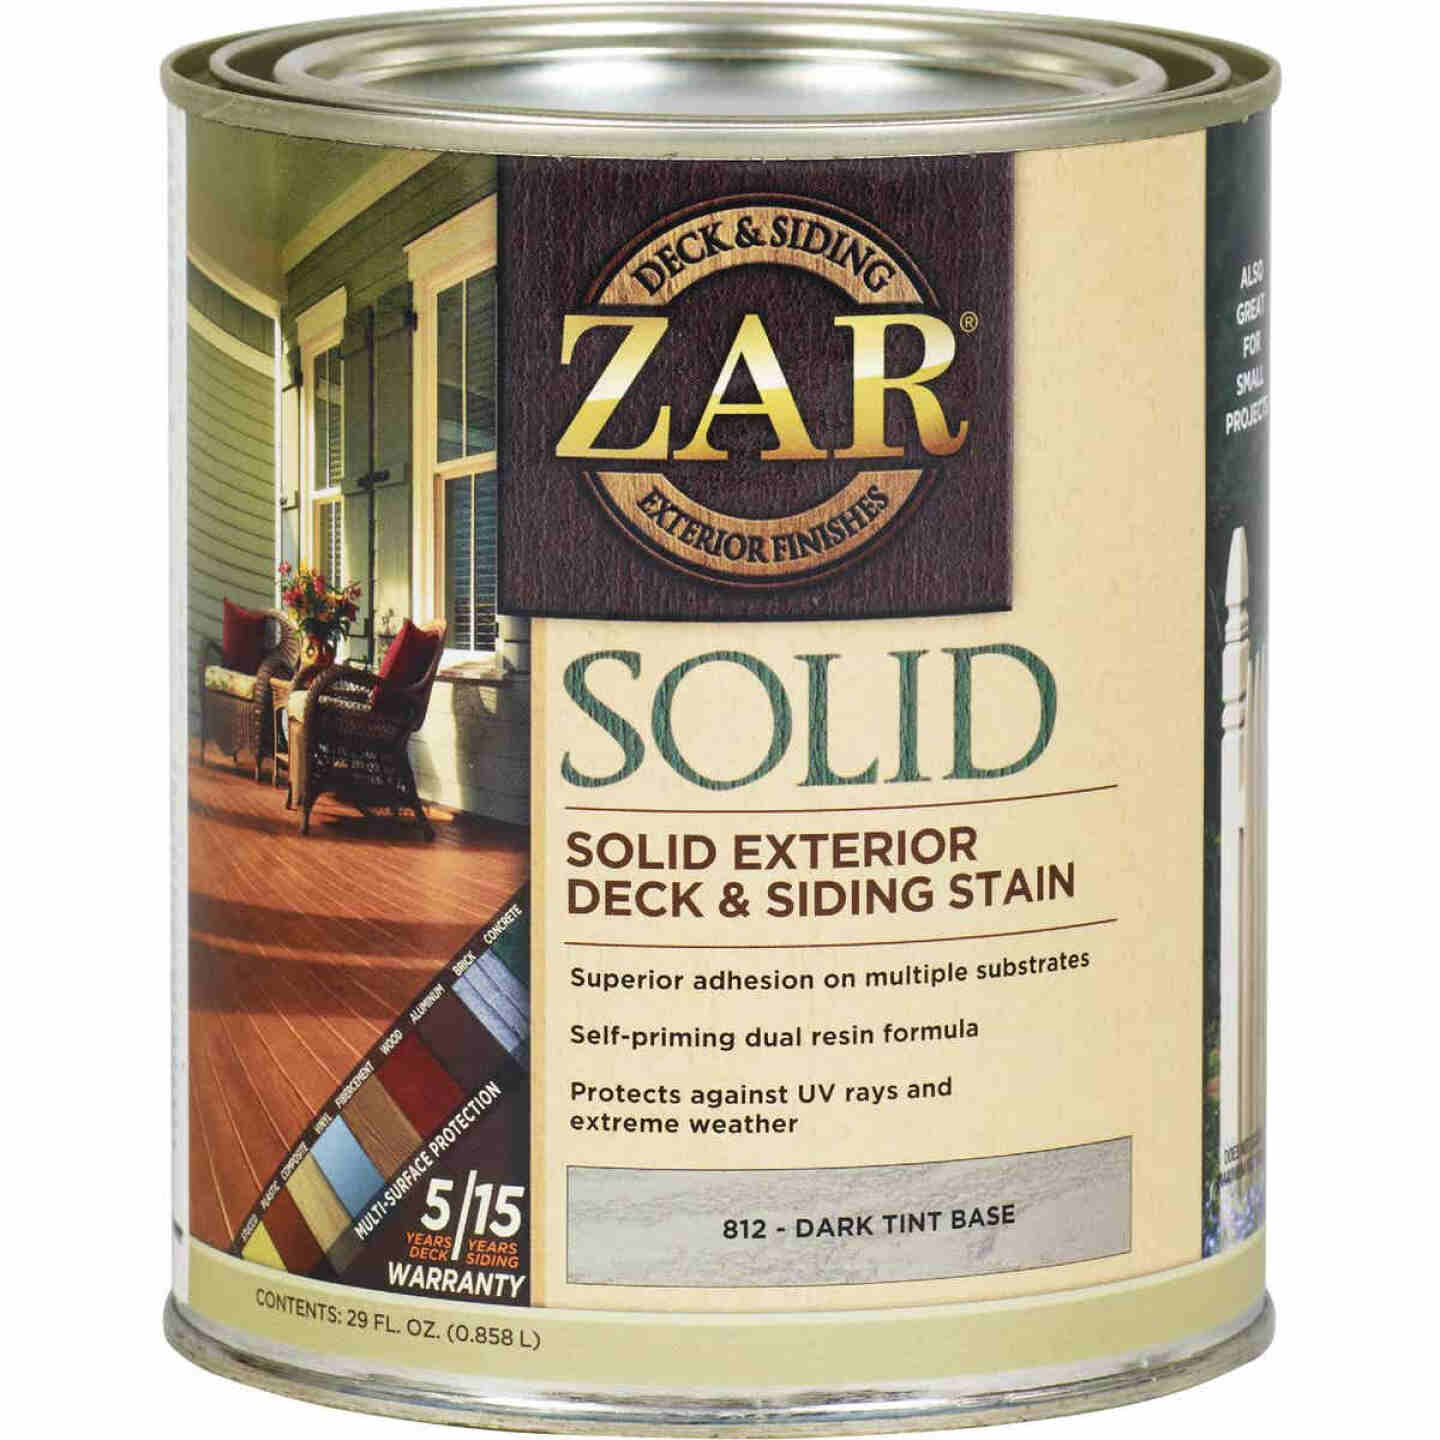 ZAR Solid Deck & Siding Stain, Dark Tint Base, 1 Qt. Image 1